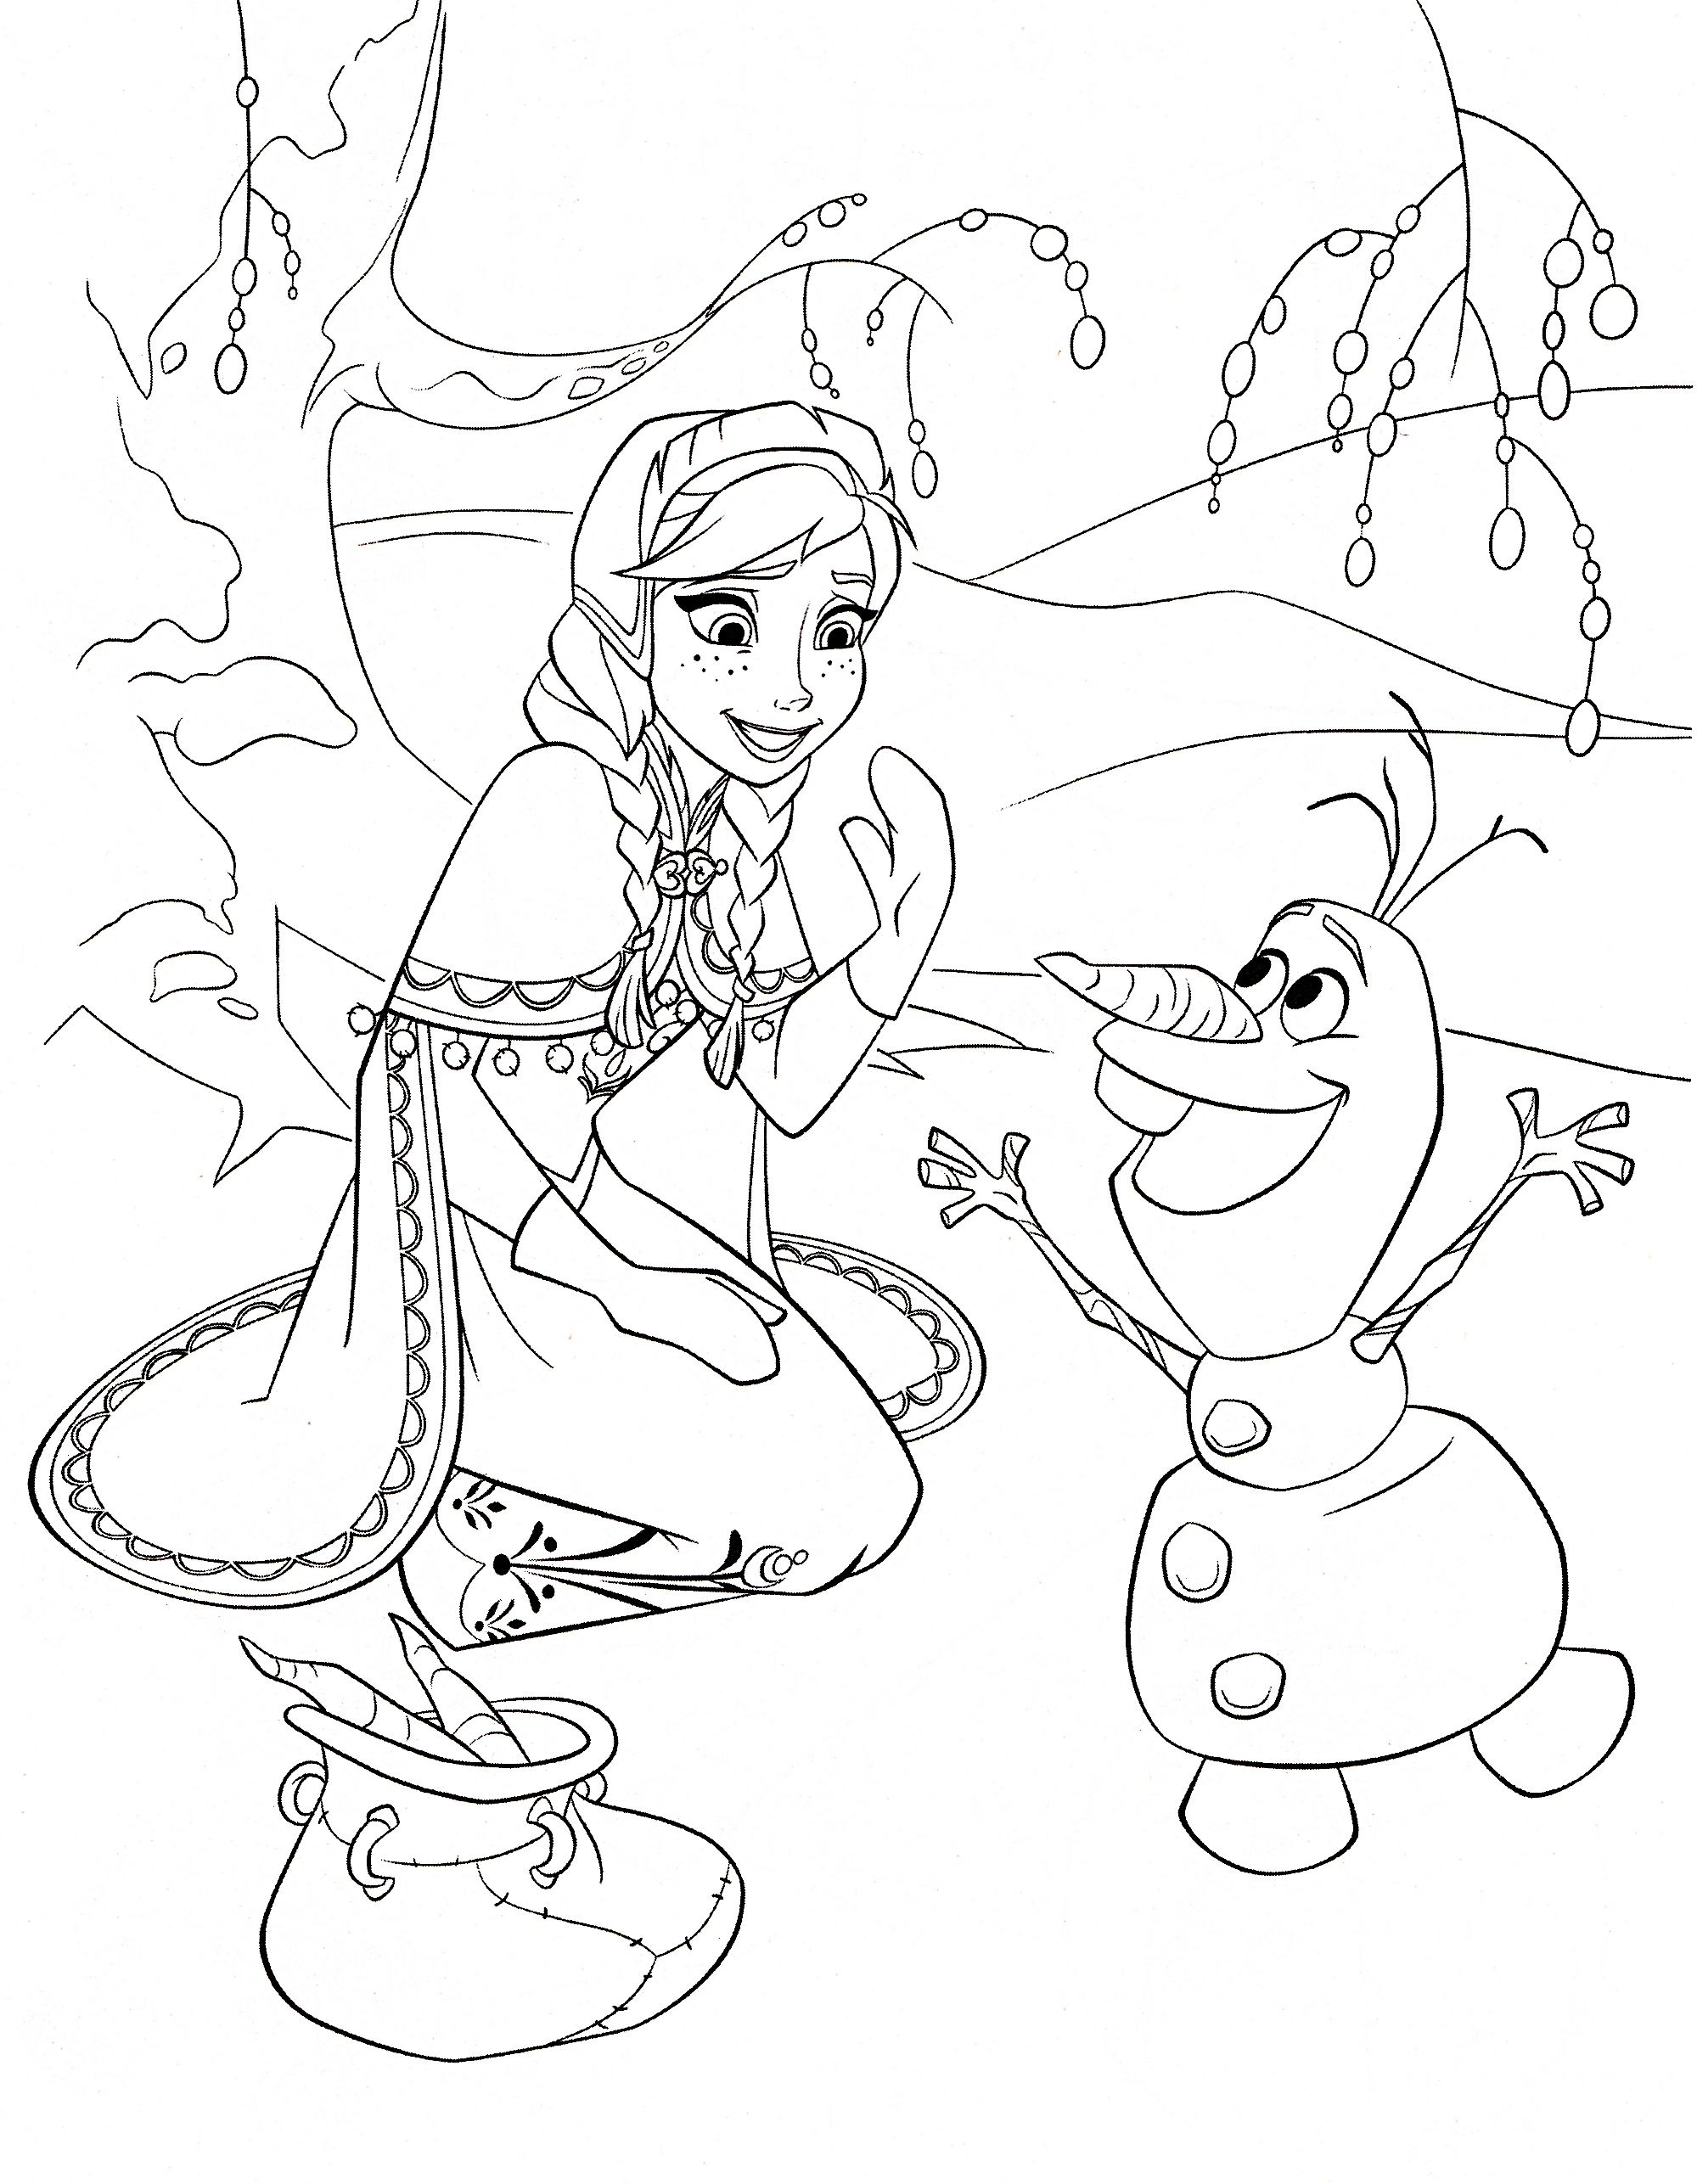 Coloring Pages Walt Disney : Disneys frozen character coloring pages